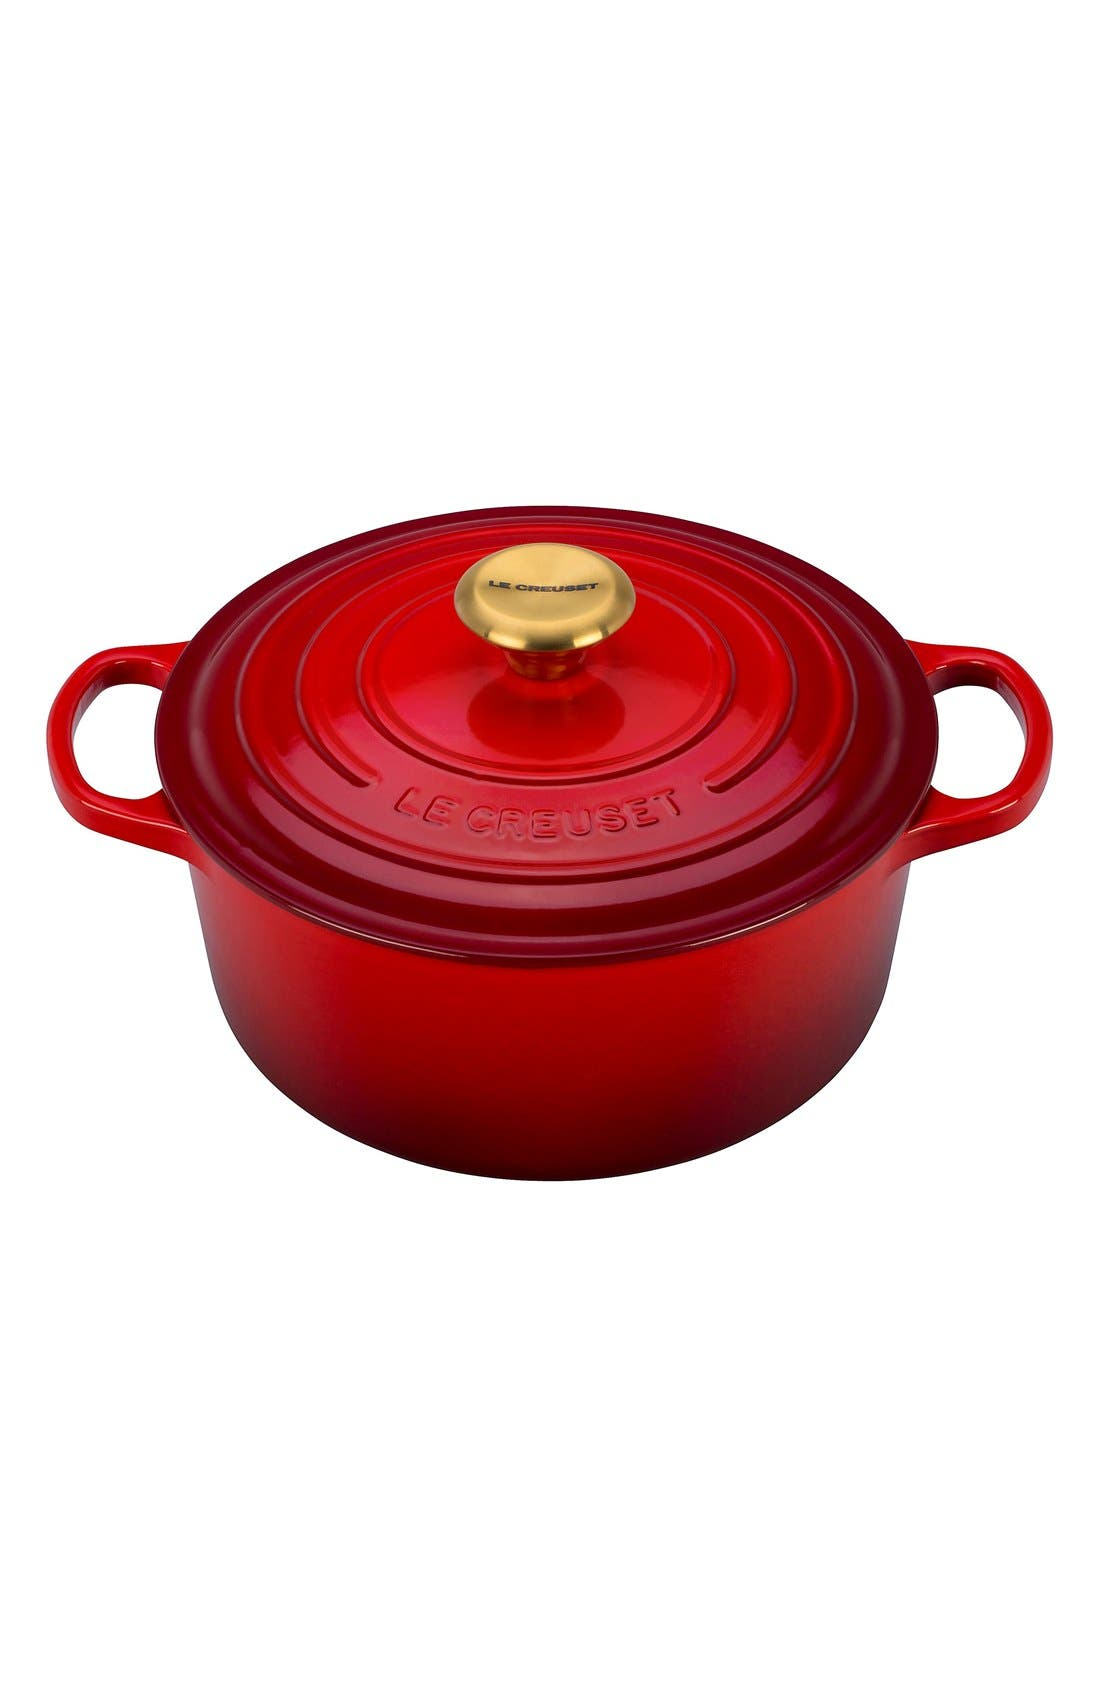 Le Creuset Gold Knob Collection 4 1/2 Quart Round French/Dutch Oven